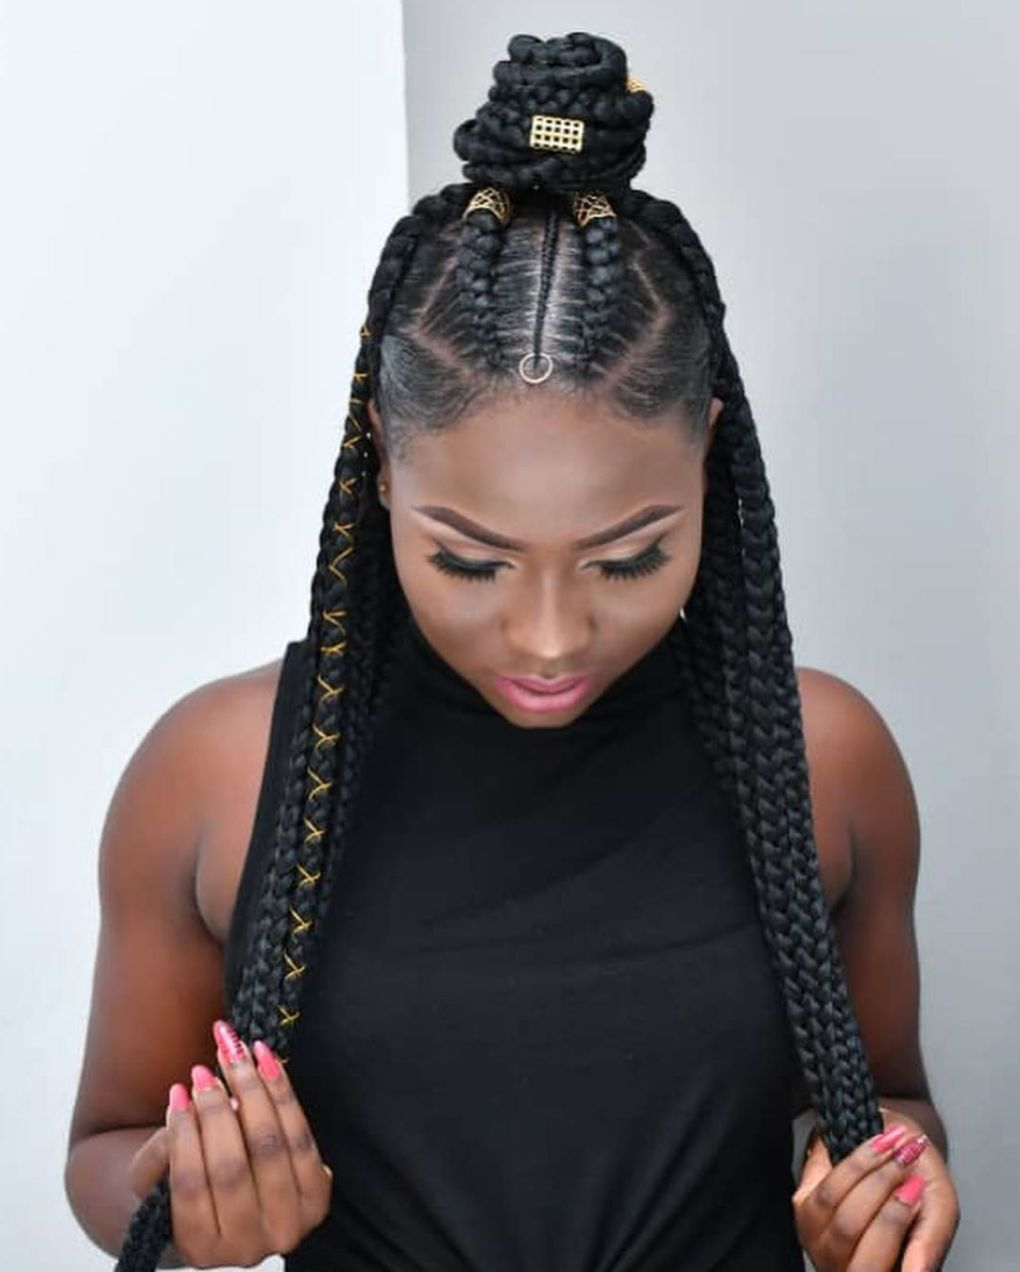 50 Jaw Dropping Braided Hairstyles To Try In 2021 Hair Adviser Braided Hairstyles Hair Styles Kids Braided Hairstyles